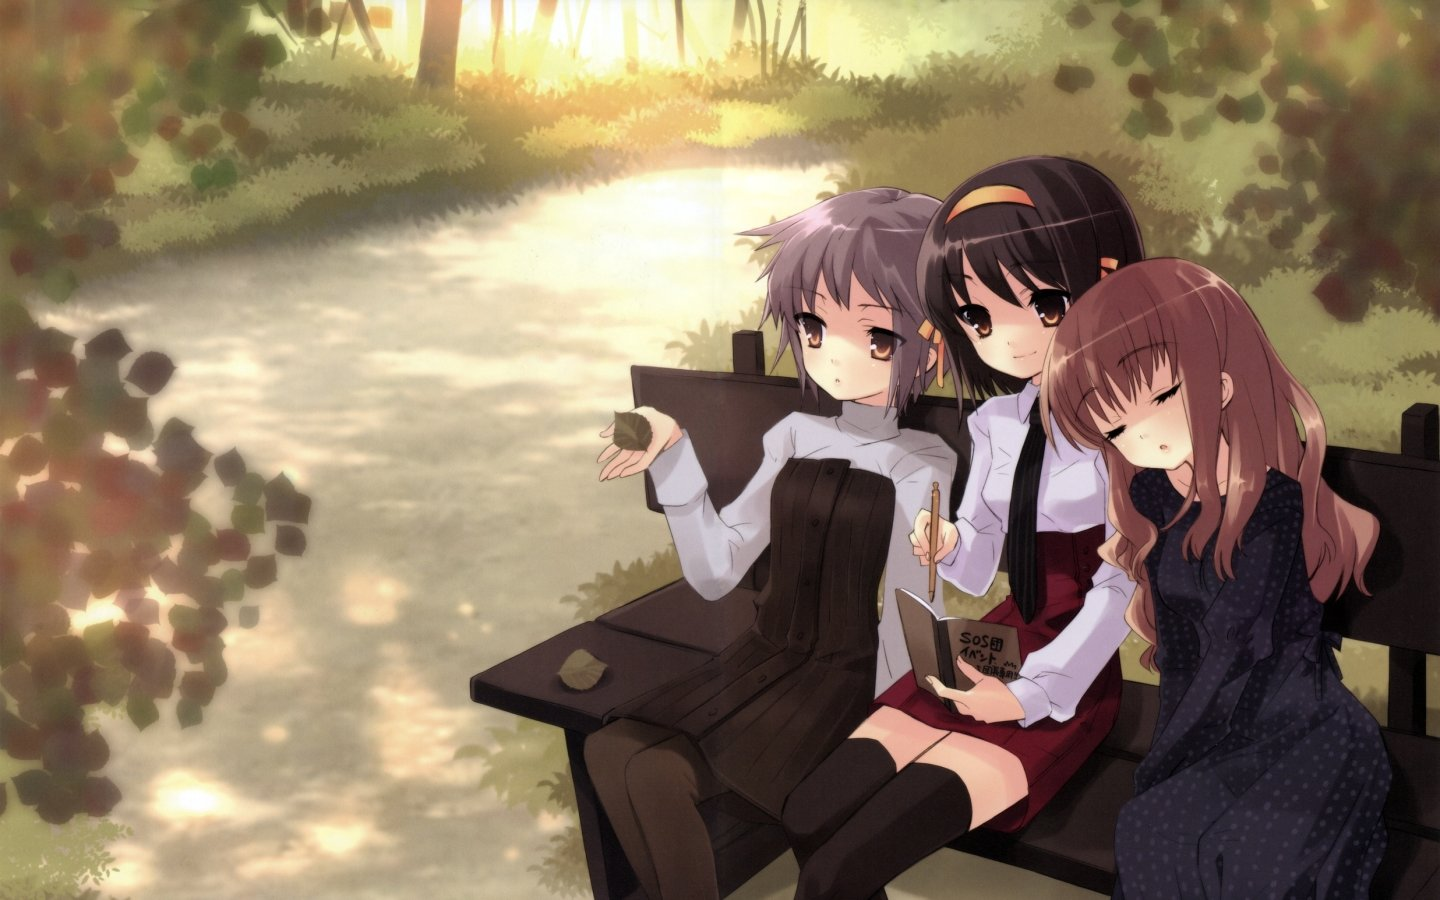 Download hd 1440x900 The Melancholy Of Haruhi Suzumiya PC background ID:139463 for free